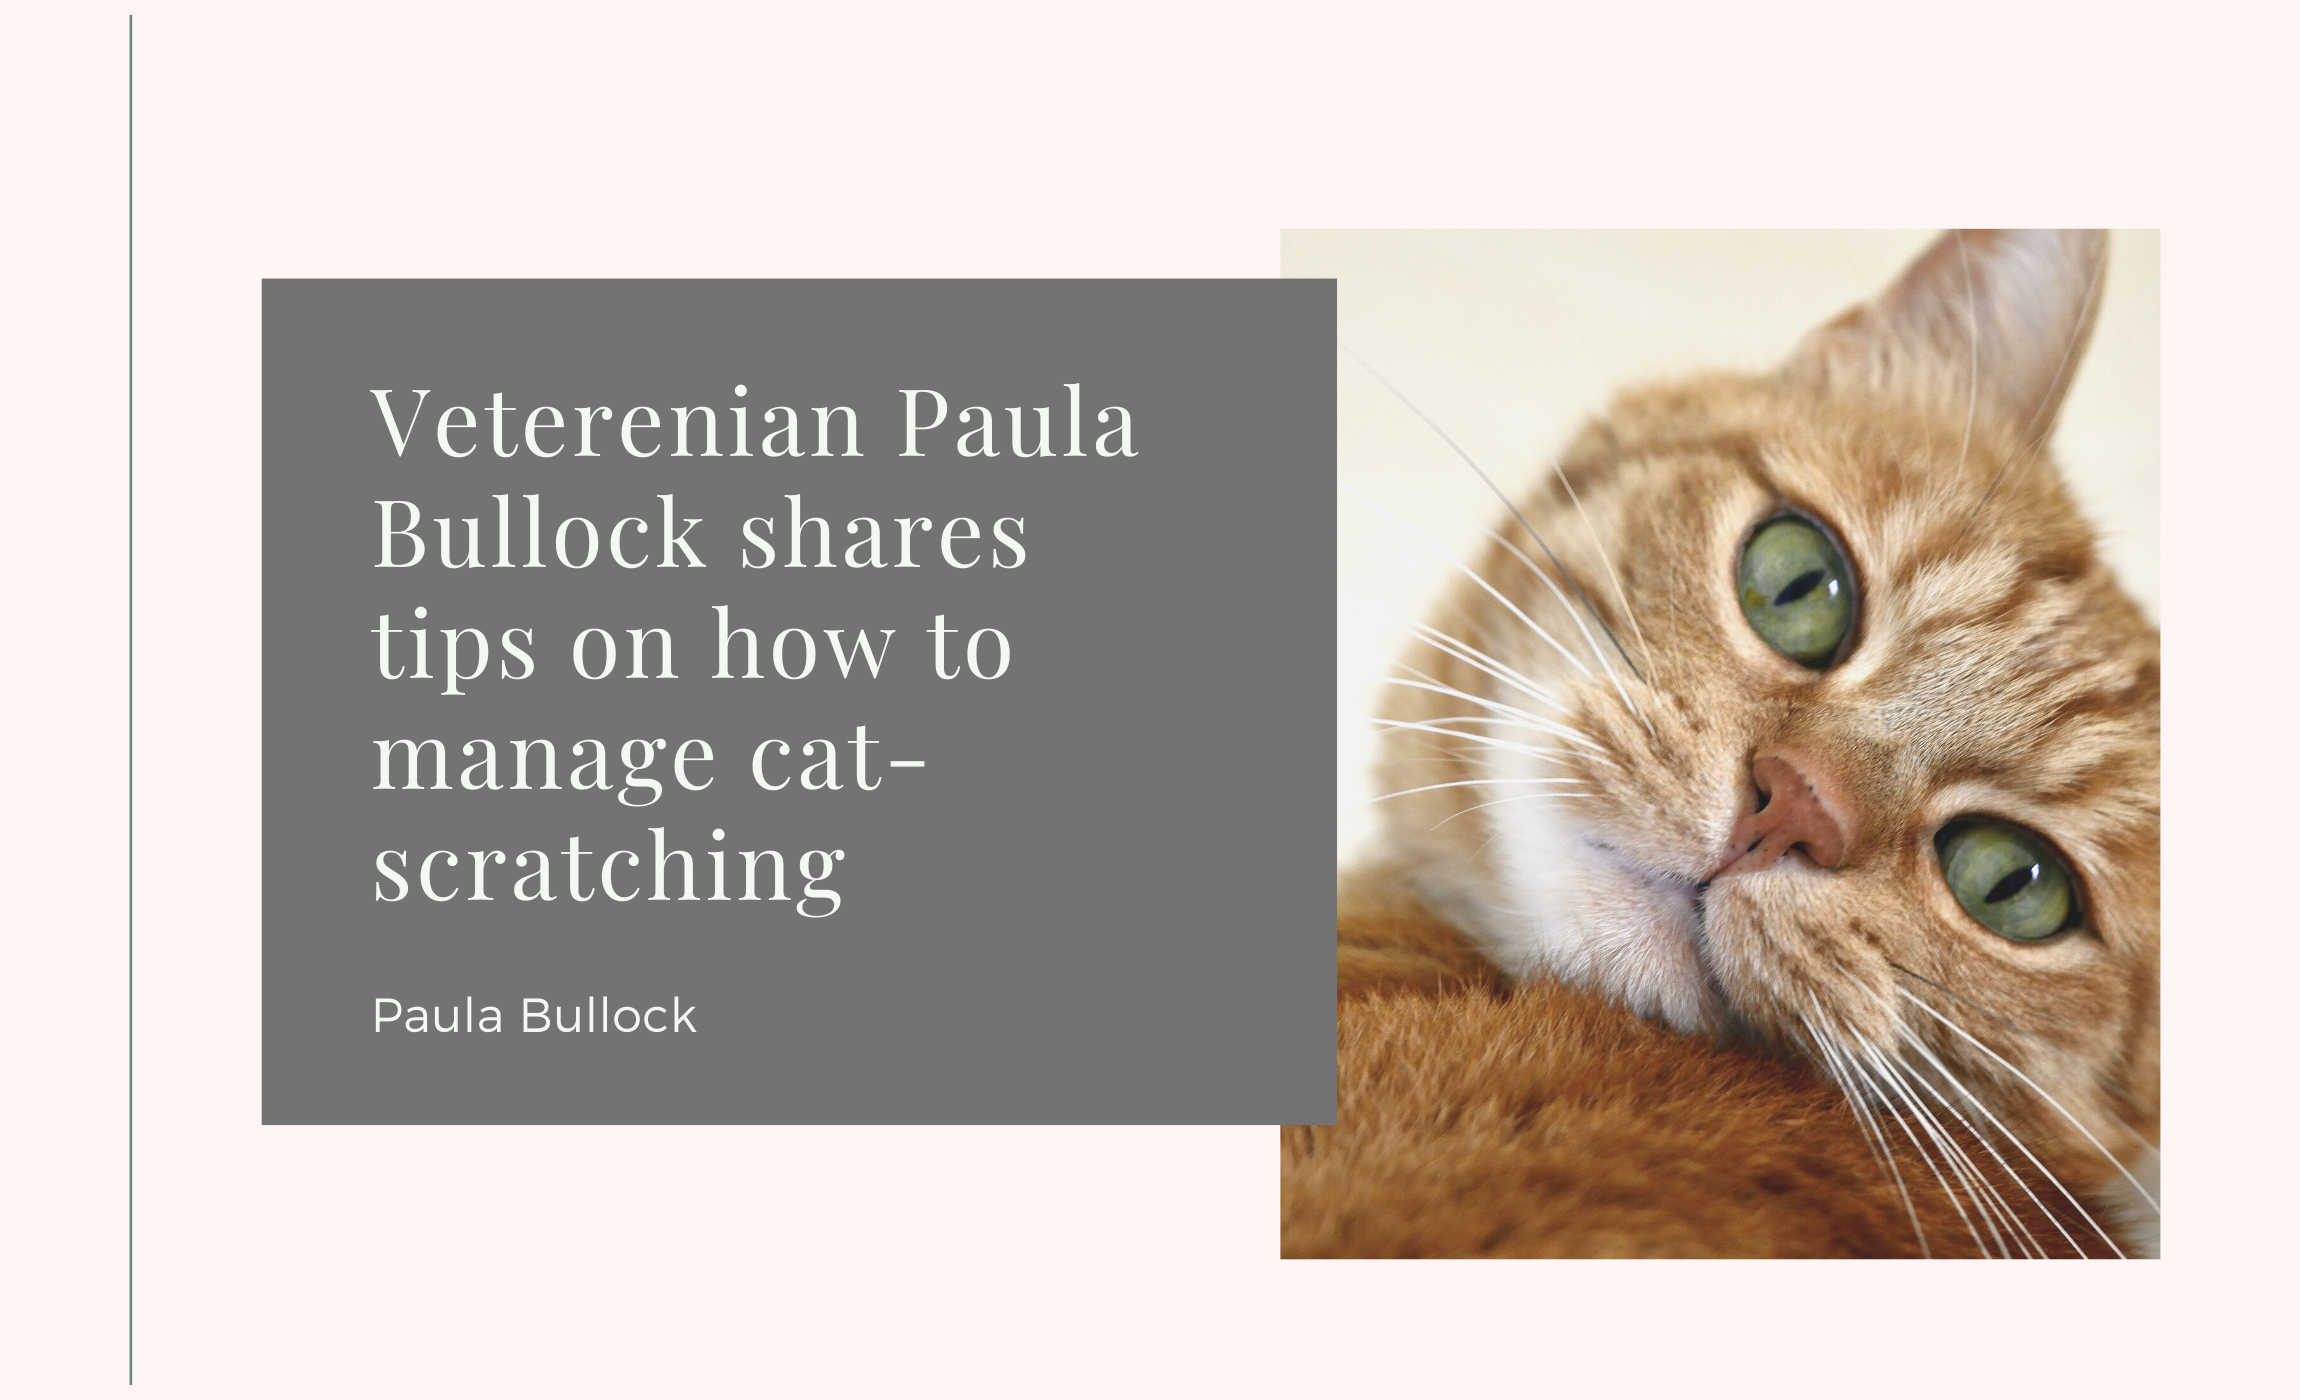 Veterenian Paula Bullock Shares Tips on How to Manage Cat-Scratching